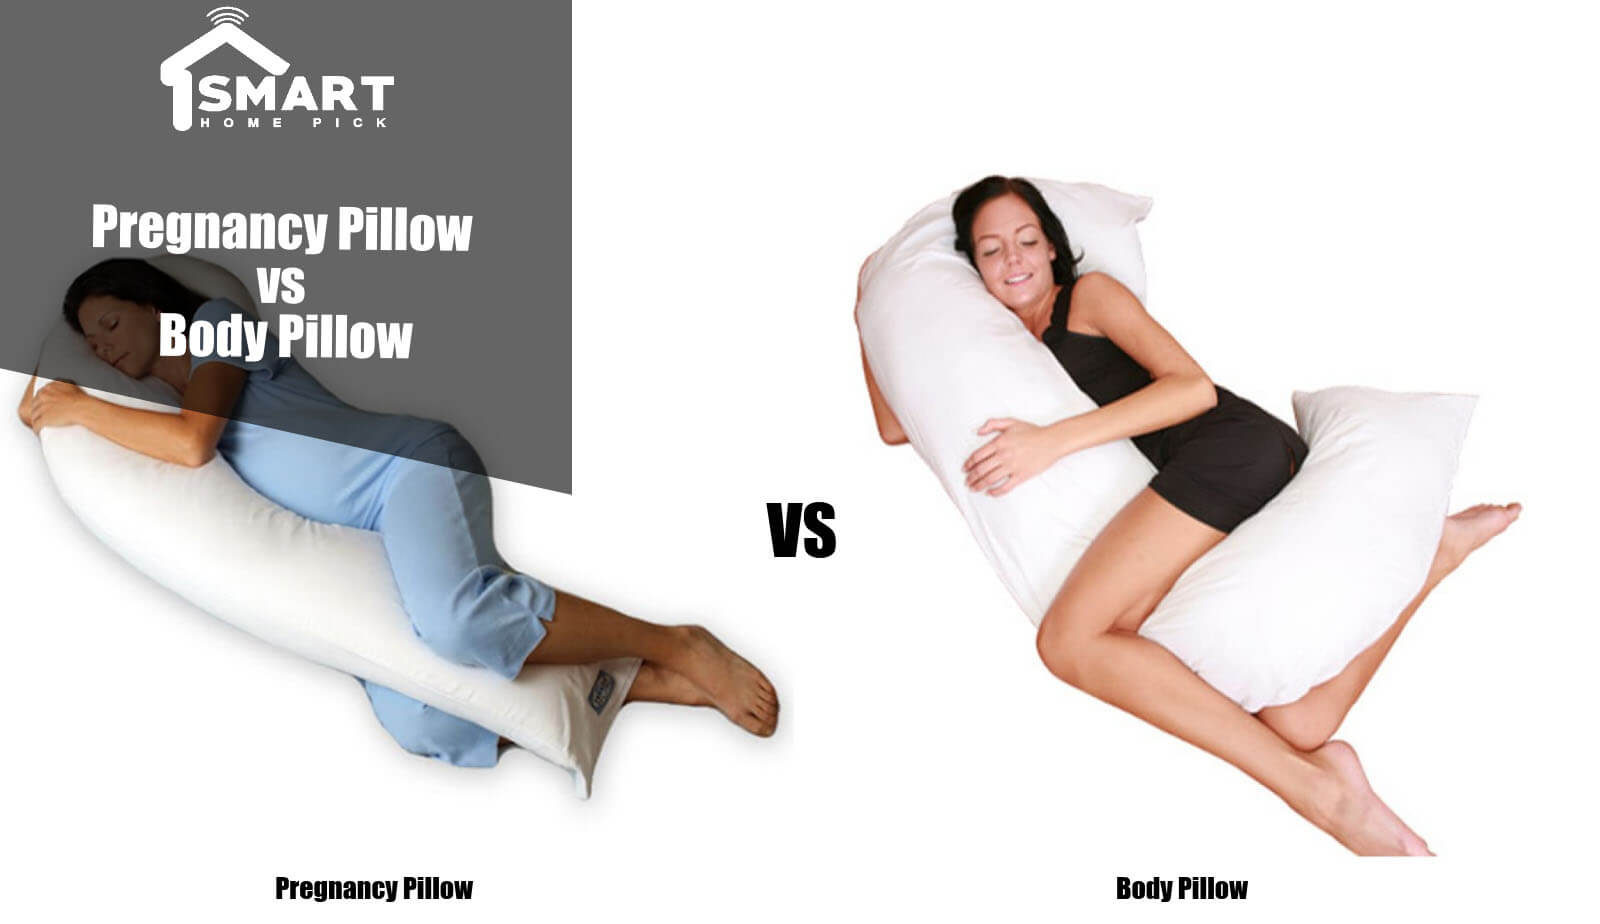 Pregnancy Pillow vs Body Pillow